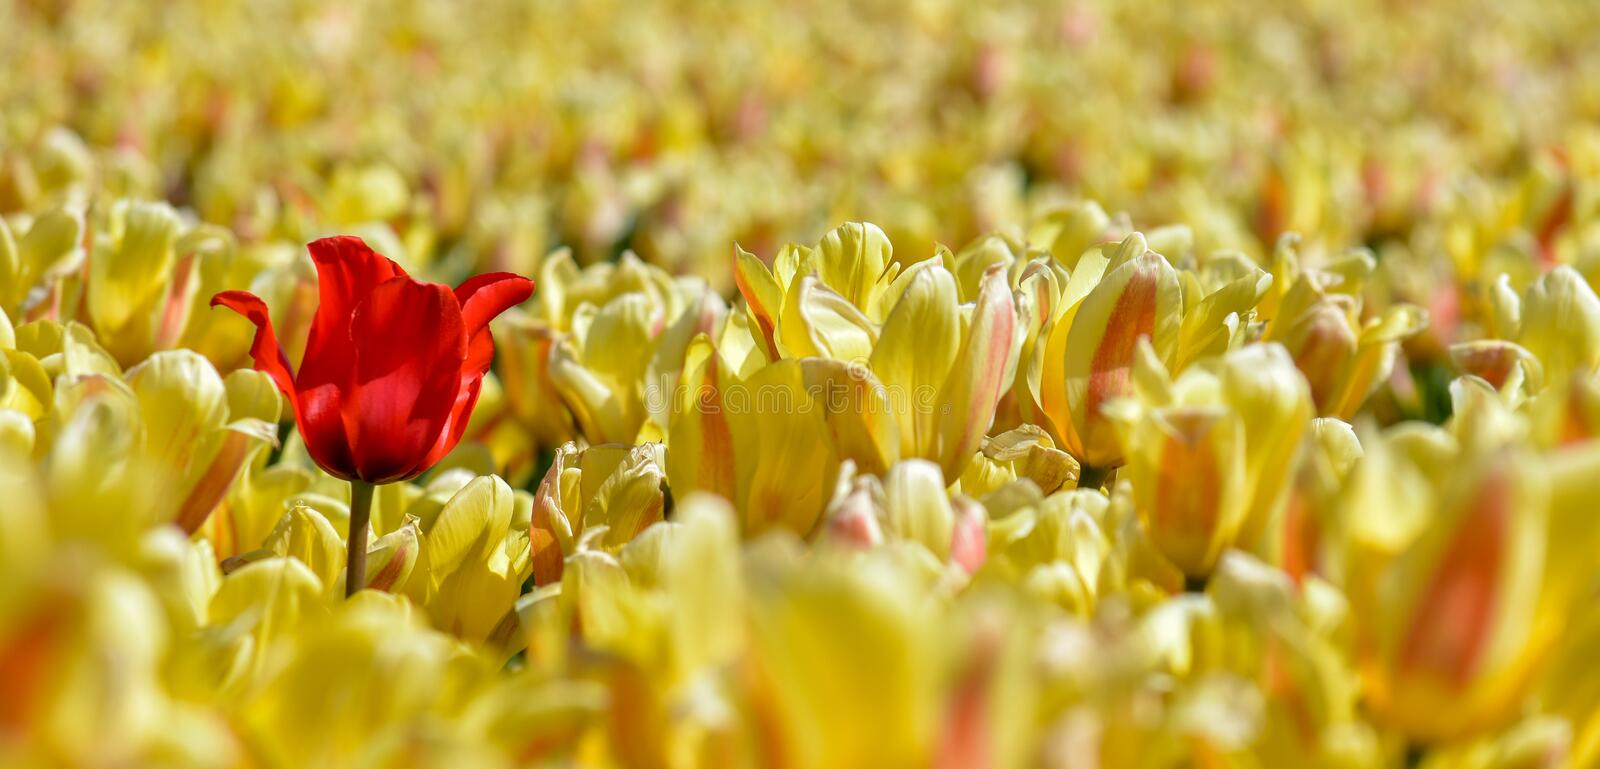 Landscape with bright red tulip in a field of yellow tulips stock photo